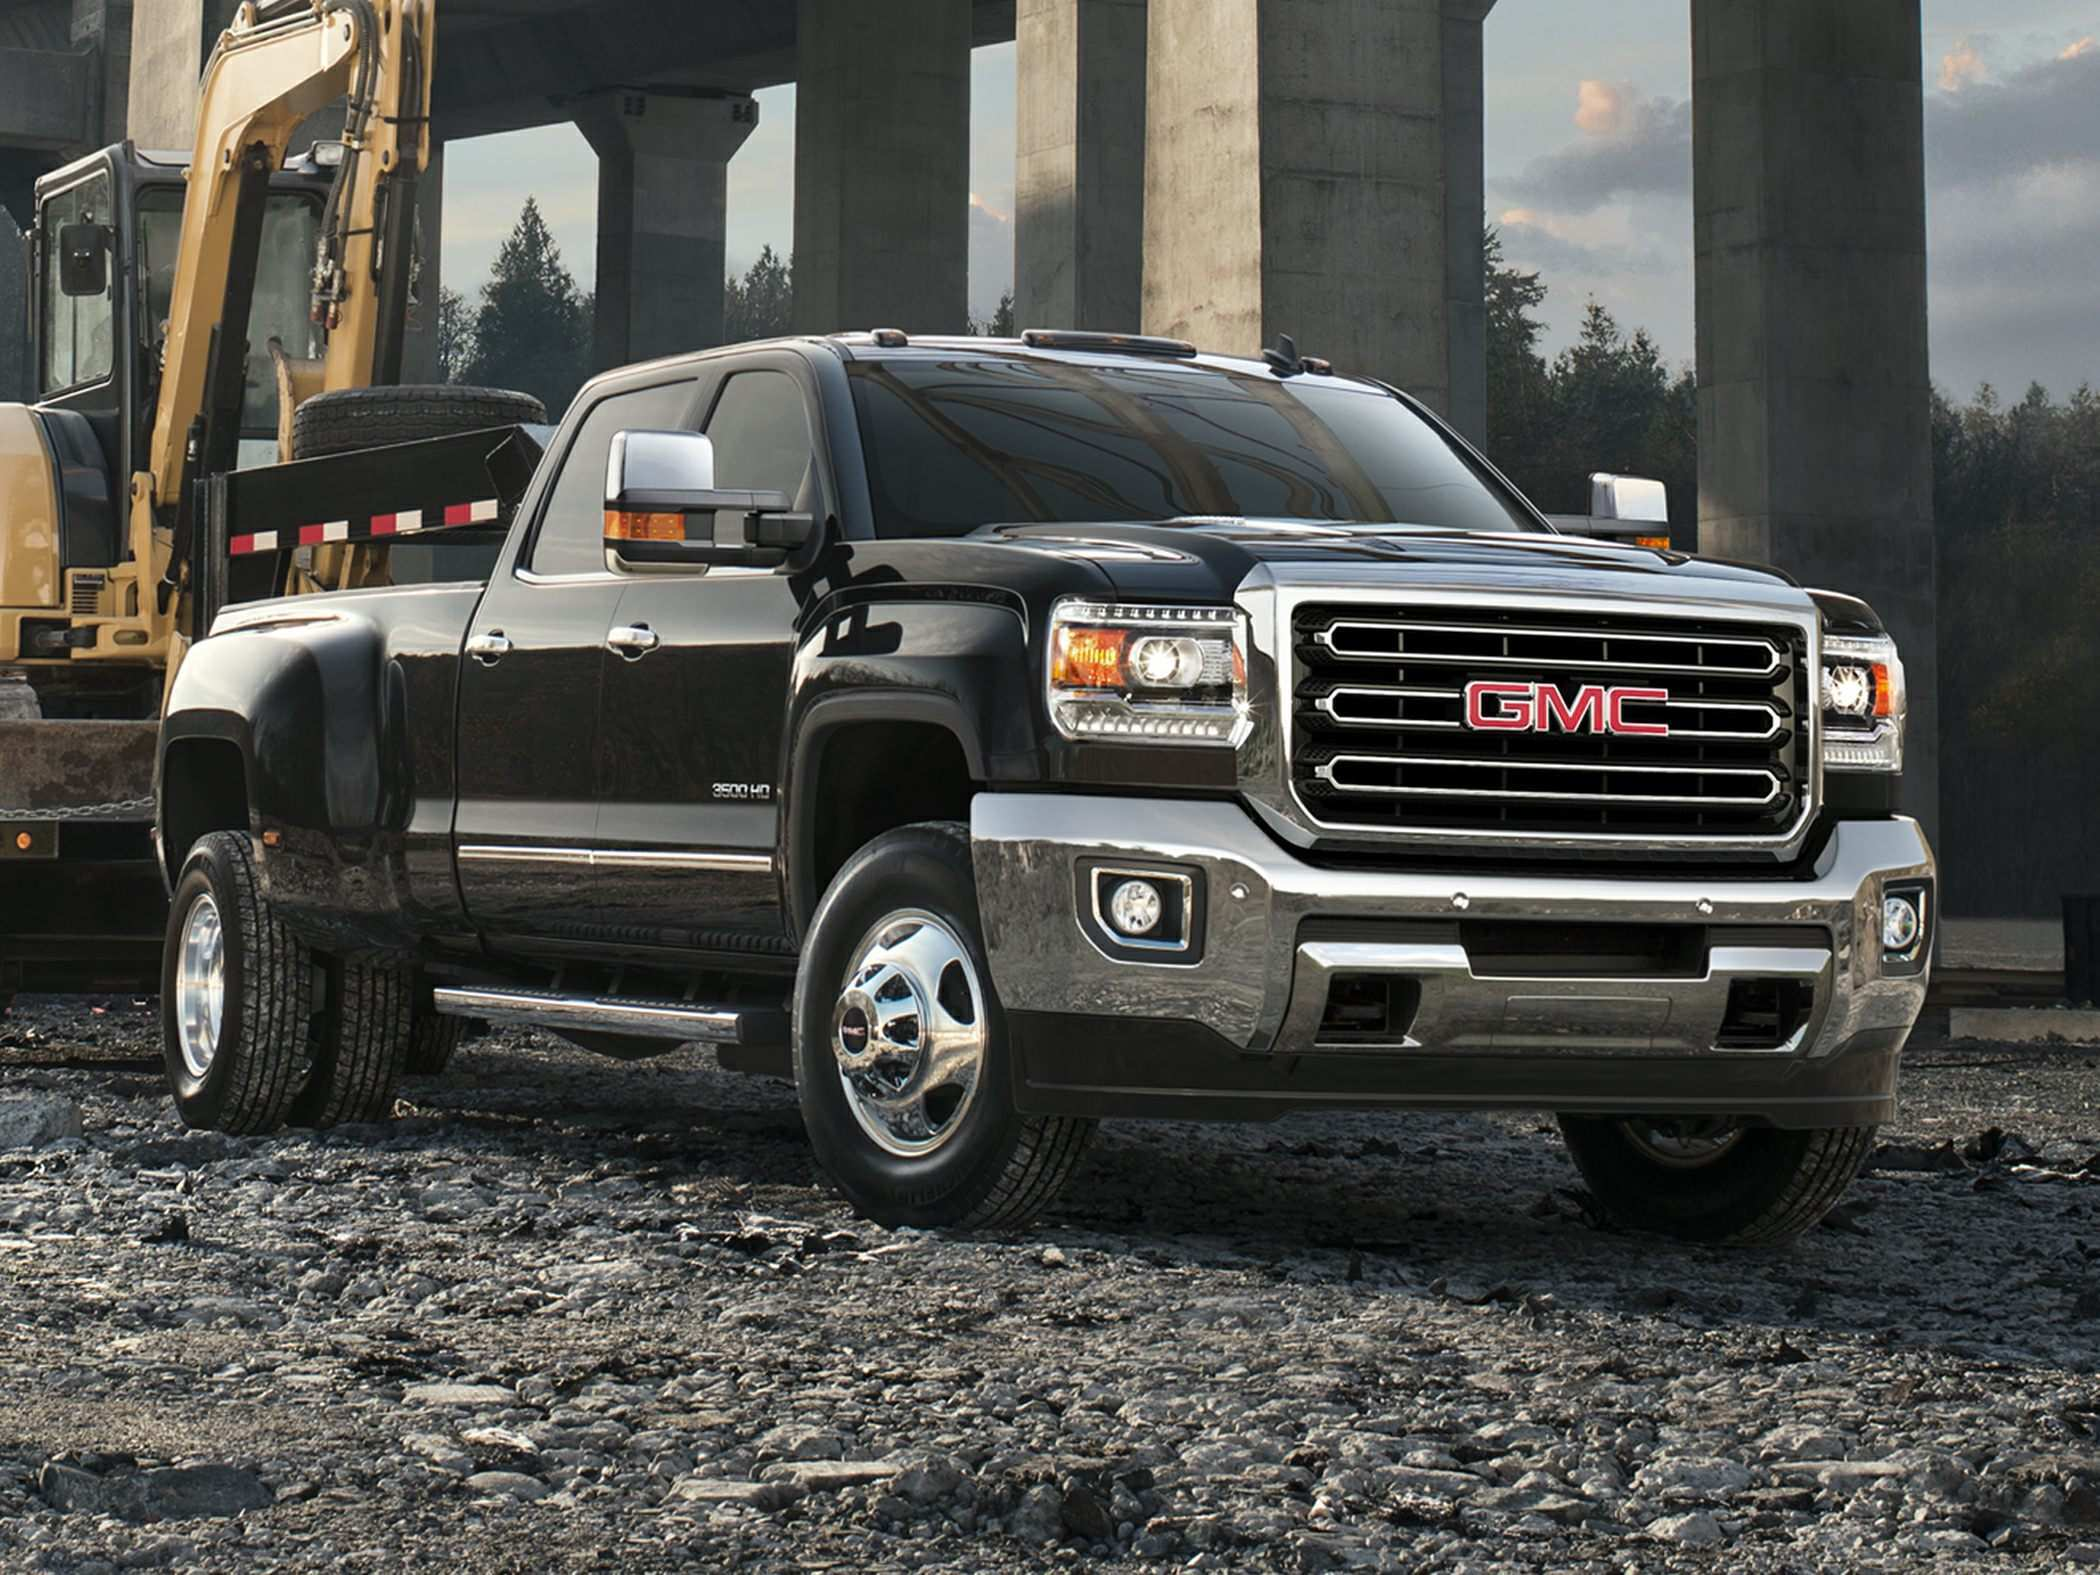 71 Great 2019 Gmc Sierra Mpg Specs History with 2019 Gmc Sierra Mpg Specs